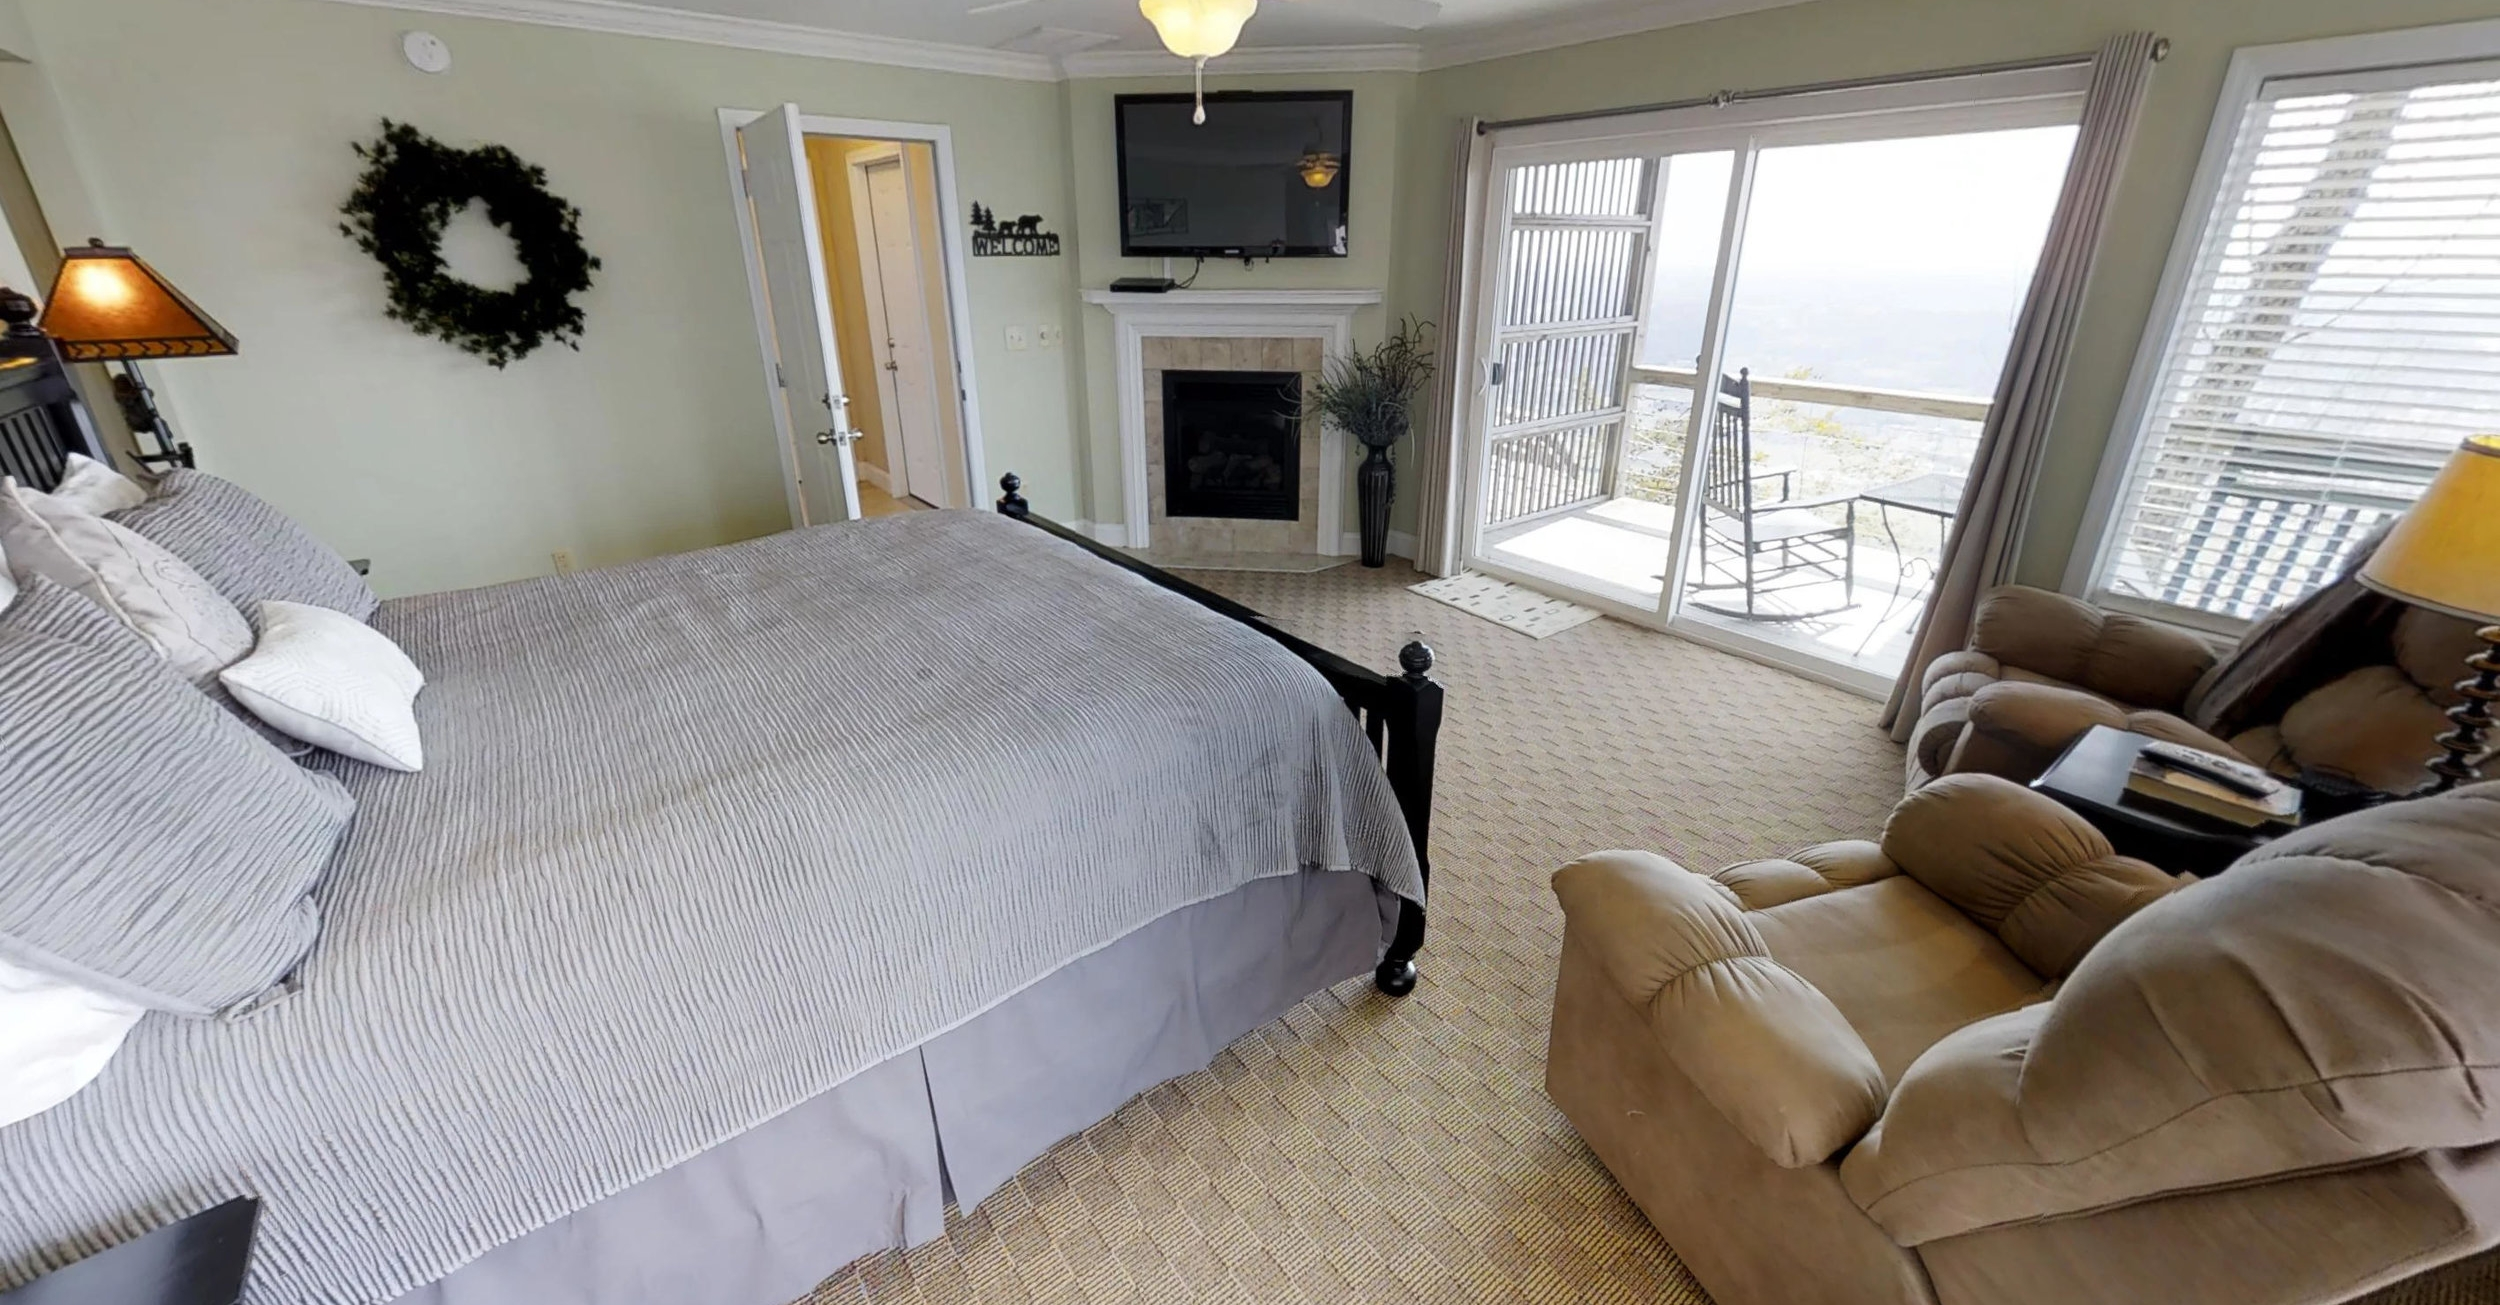 Bear - Entry Level Suite, No Steps:$175 /night + taxbased on 2 night min*Additional charge for holidays, peak weekends, and 1 night staysClick picture for virtual tour